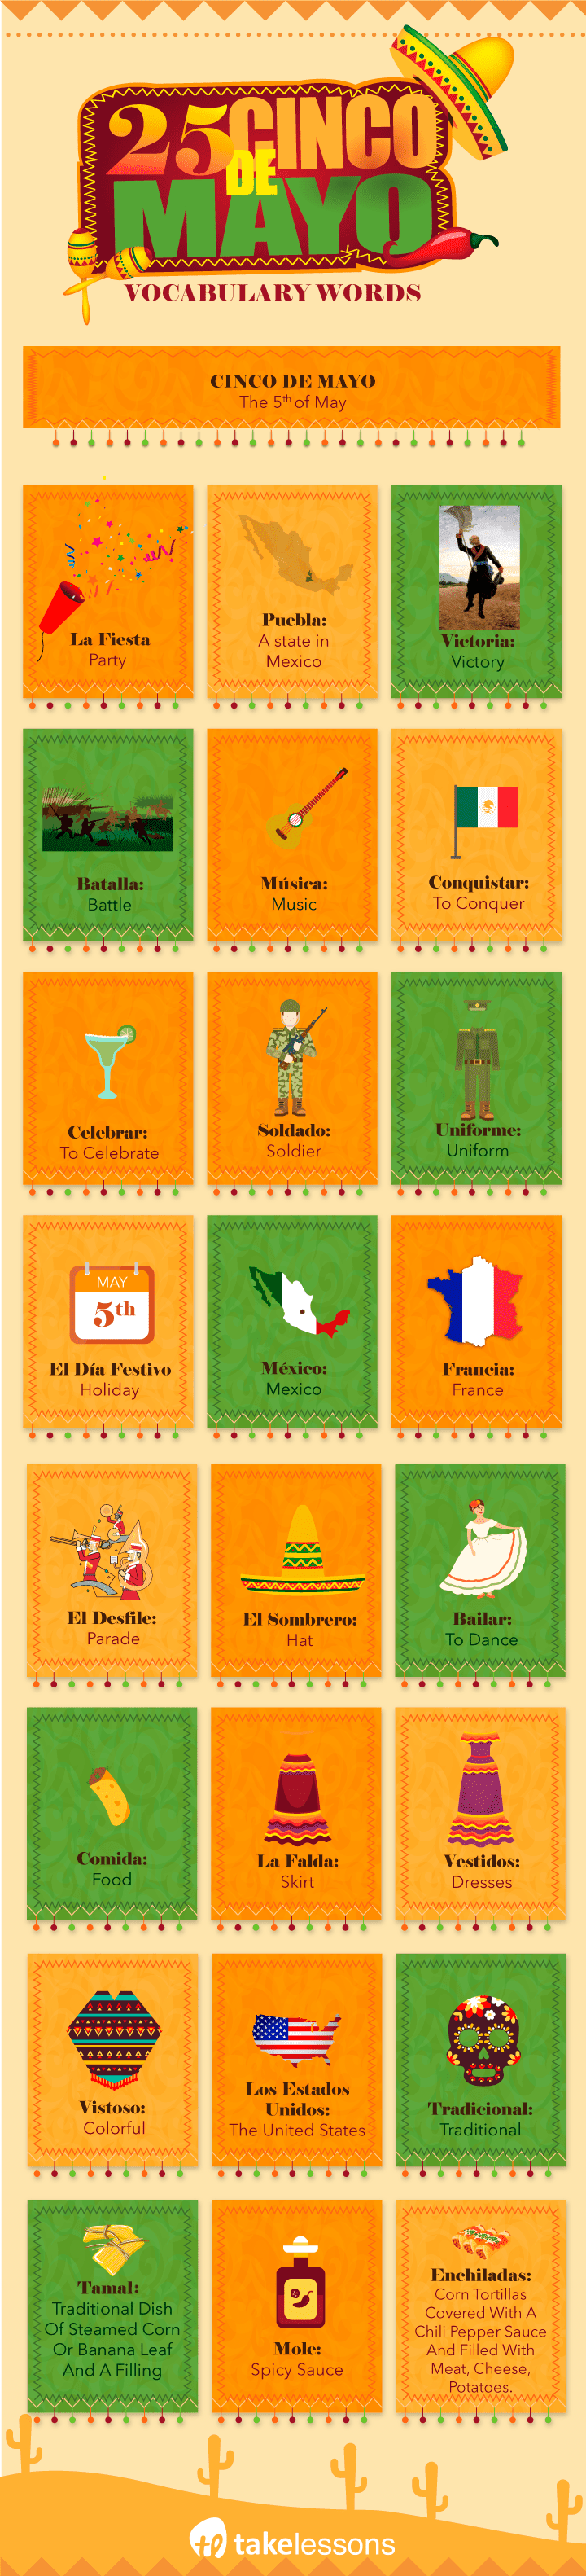 25-cinco-de-mayo-vocabulary-words